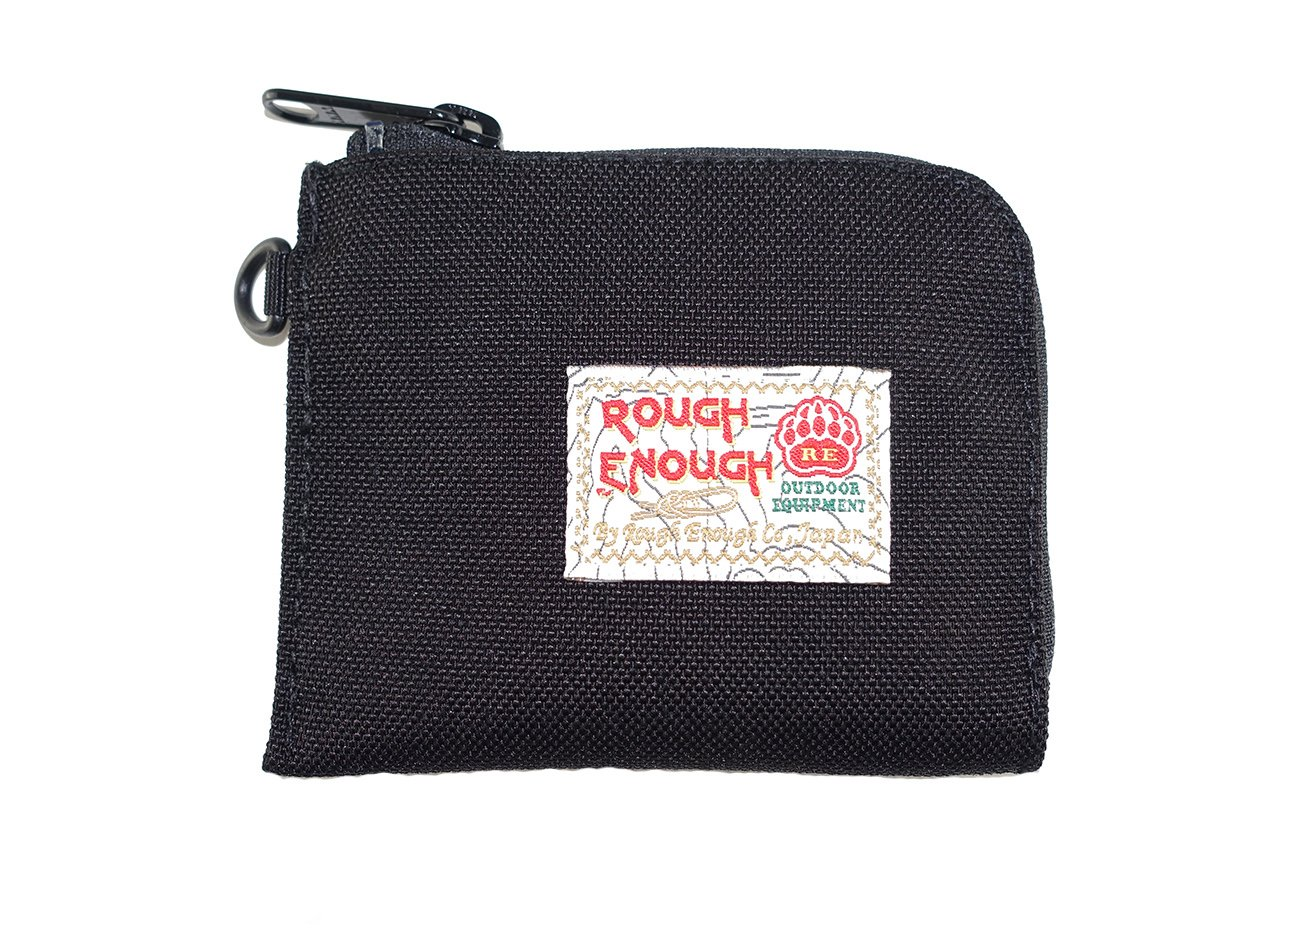 Rough Enough Borsellino a tre funzioni per monete/carte di credito/banconote, Black ROUGH ENOUGH INC. RE8323